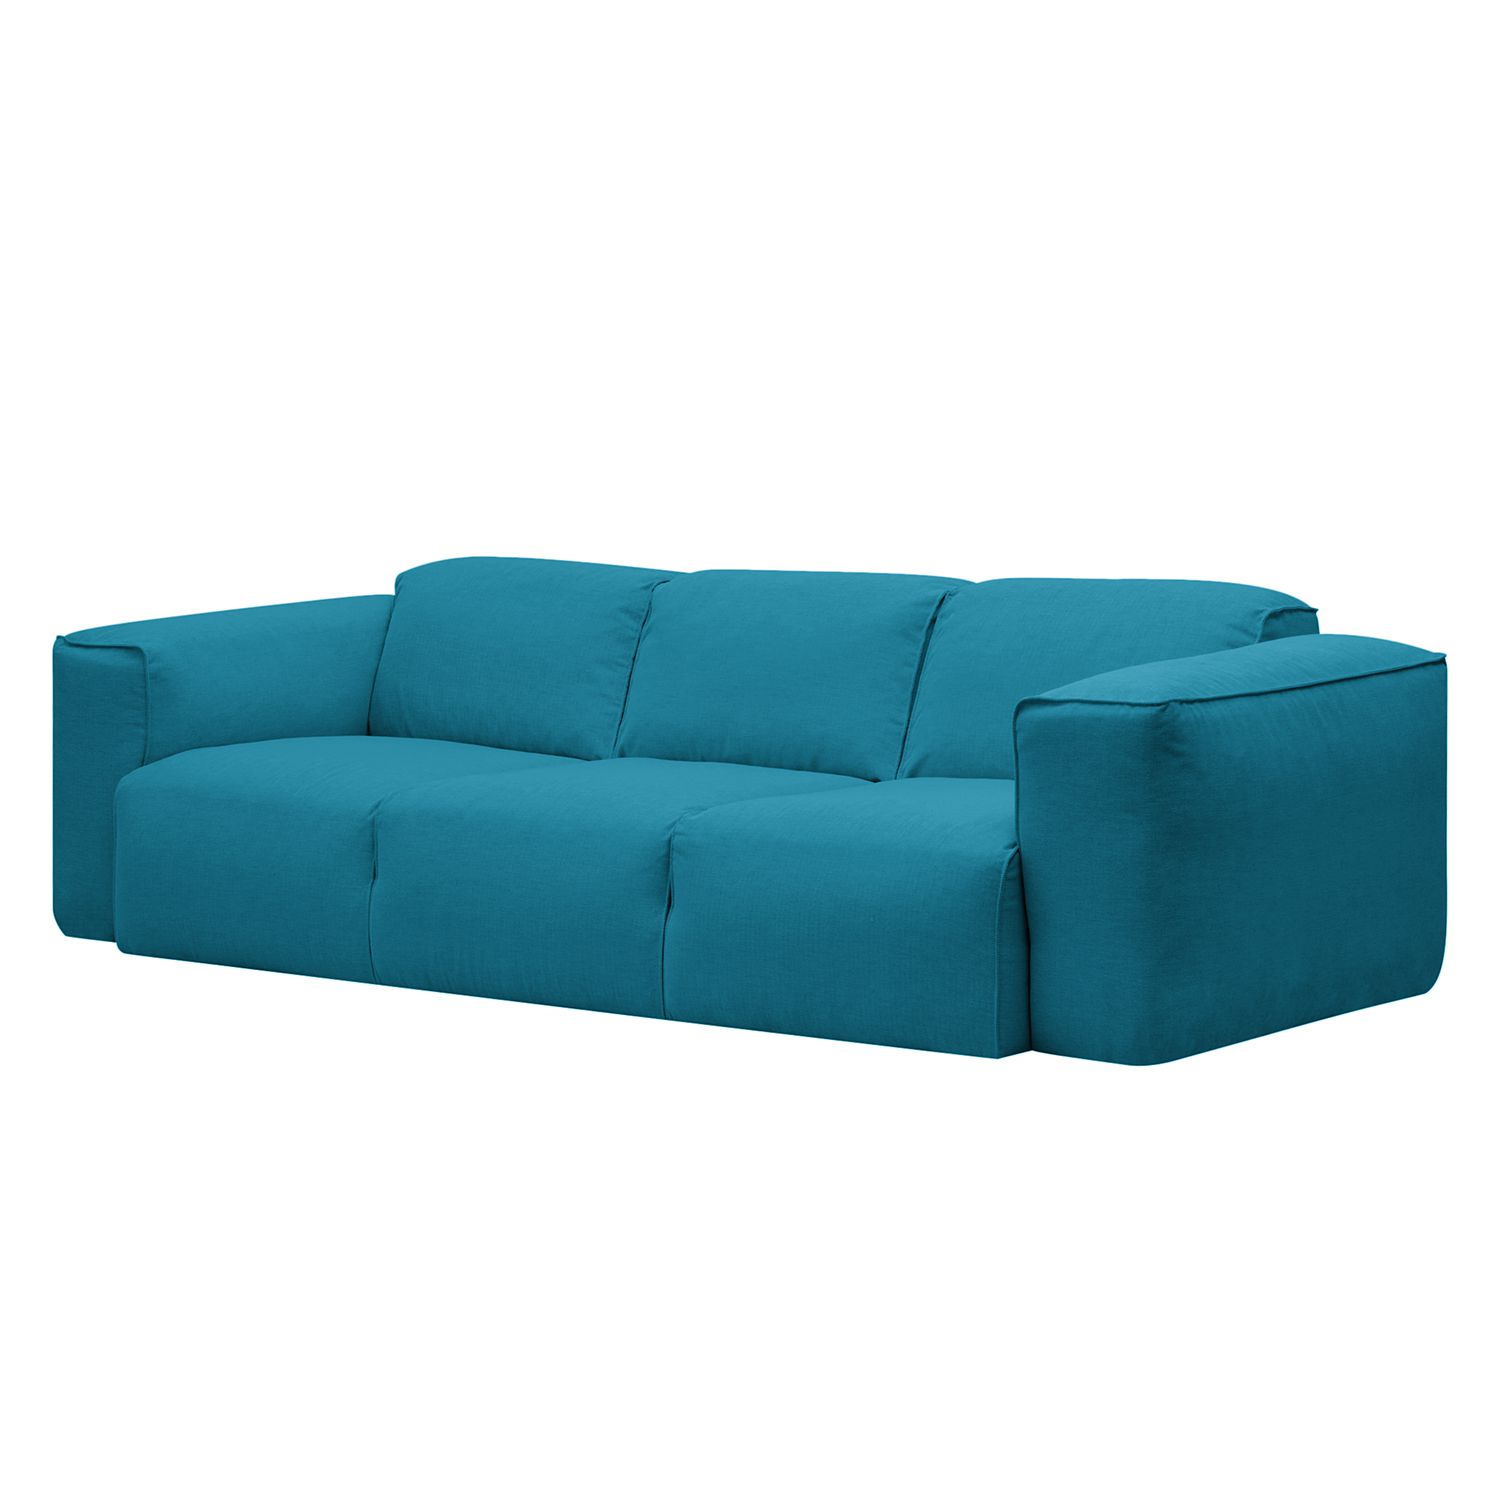 Pin By Ladendirekt On Sofas Couches Couch Sofa Furniture